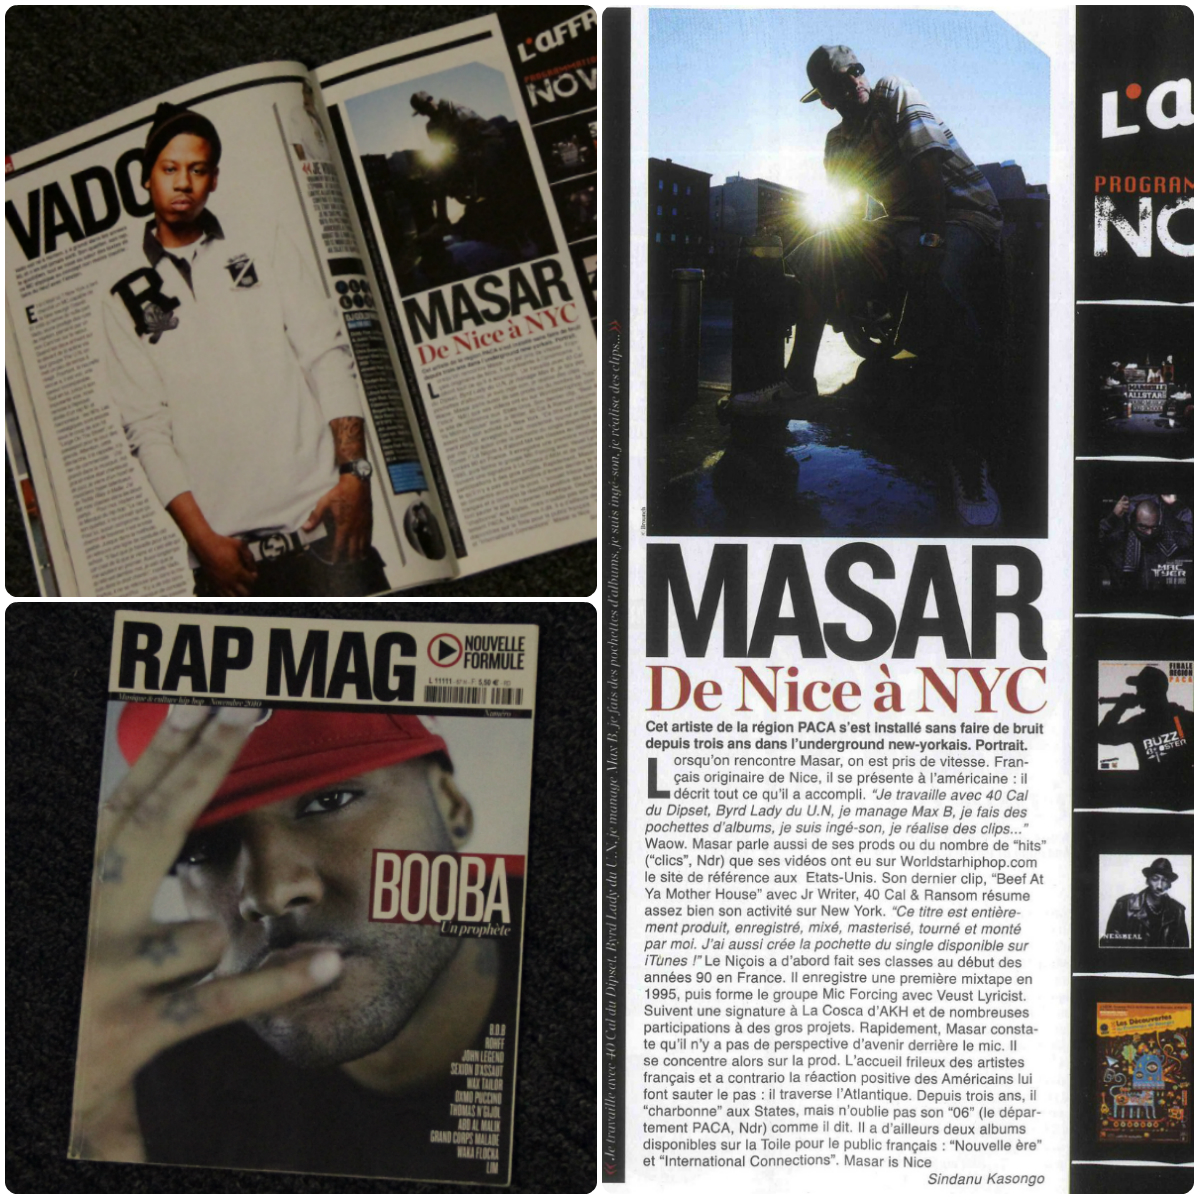 Masar's interview on RapMag (Biggest Hip Hop Magazine in Europe)